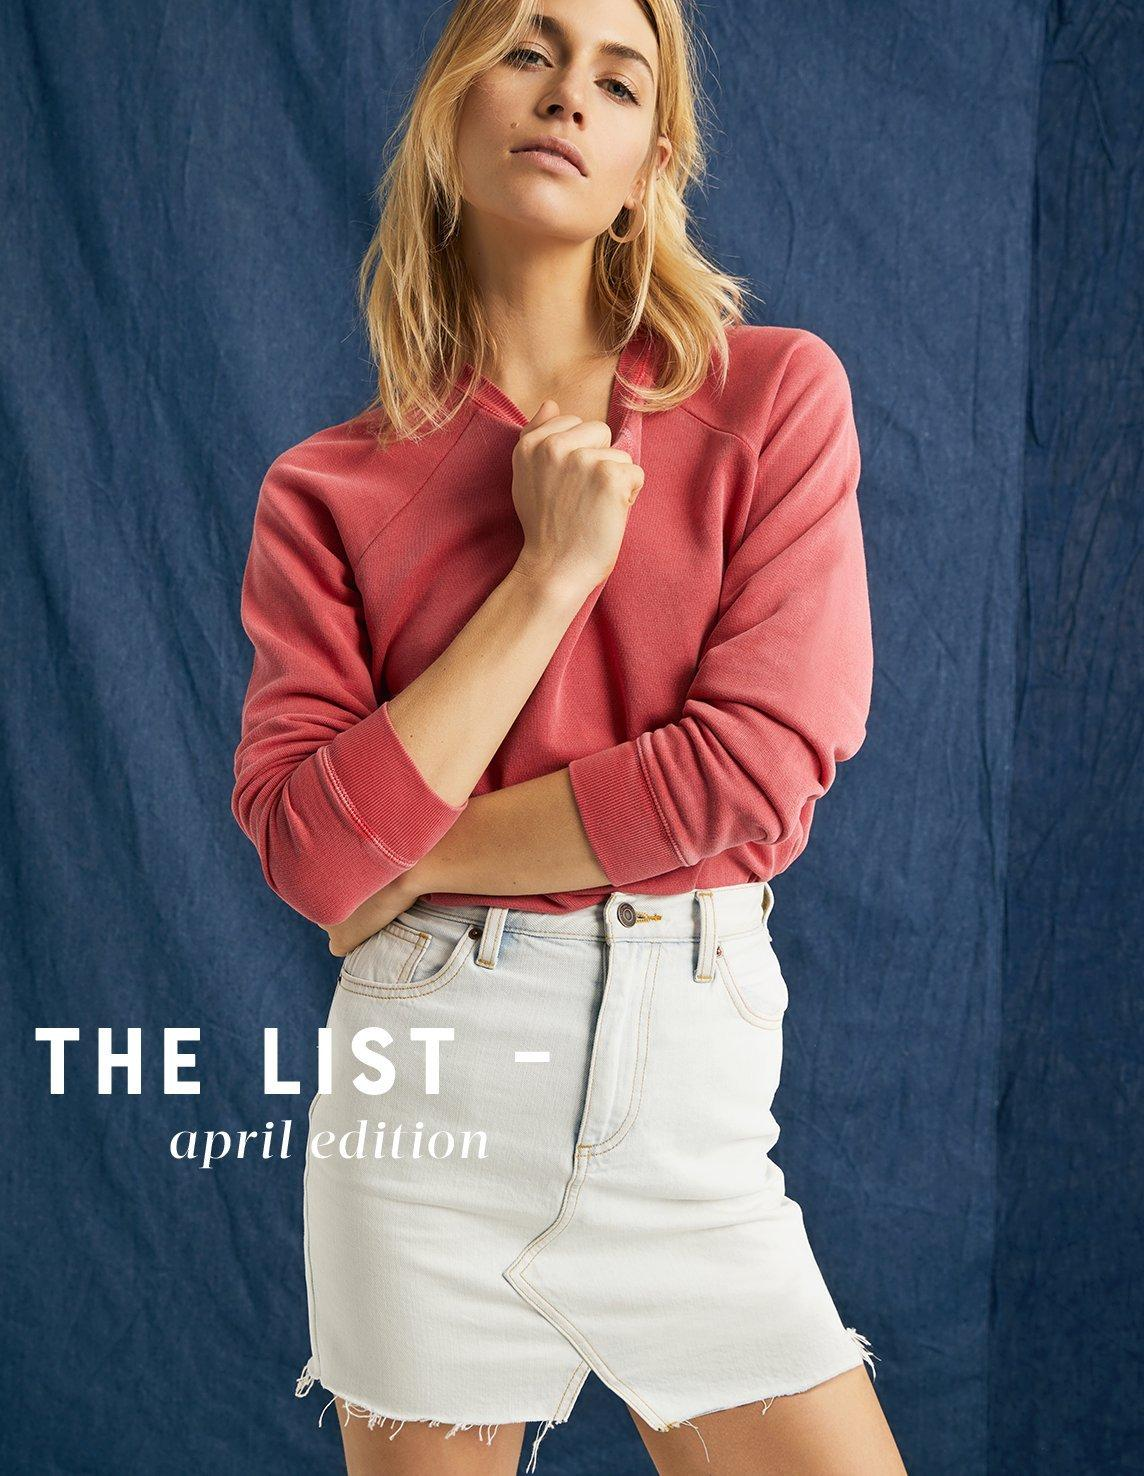 The List April